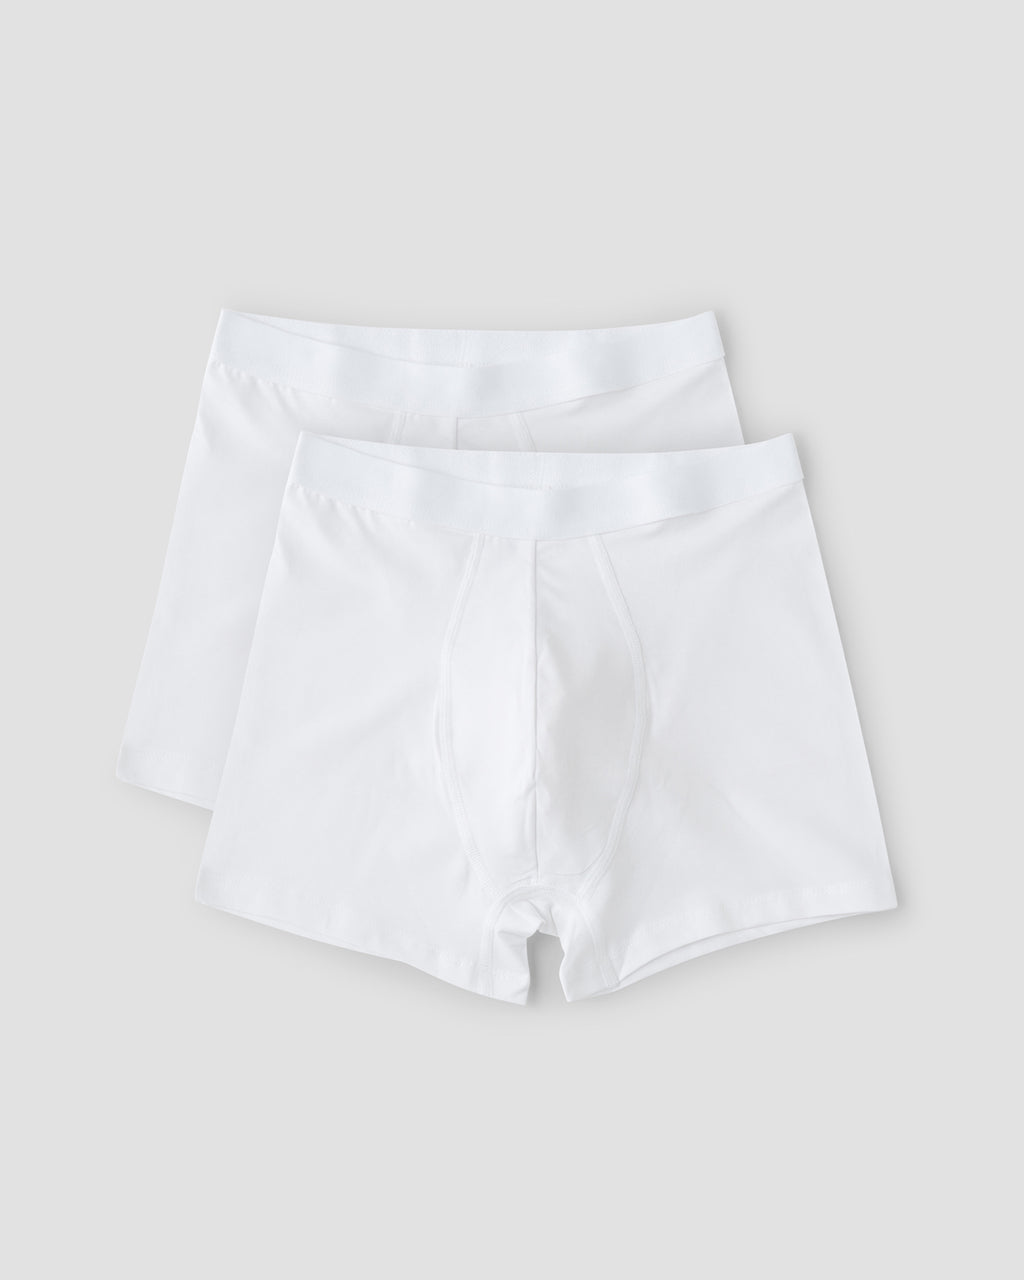 Organic Cotton Boxers 2-pack, White